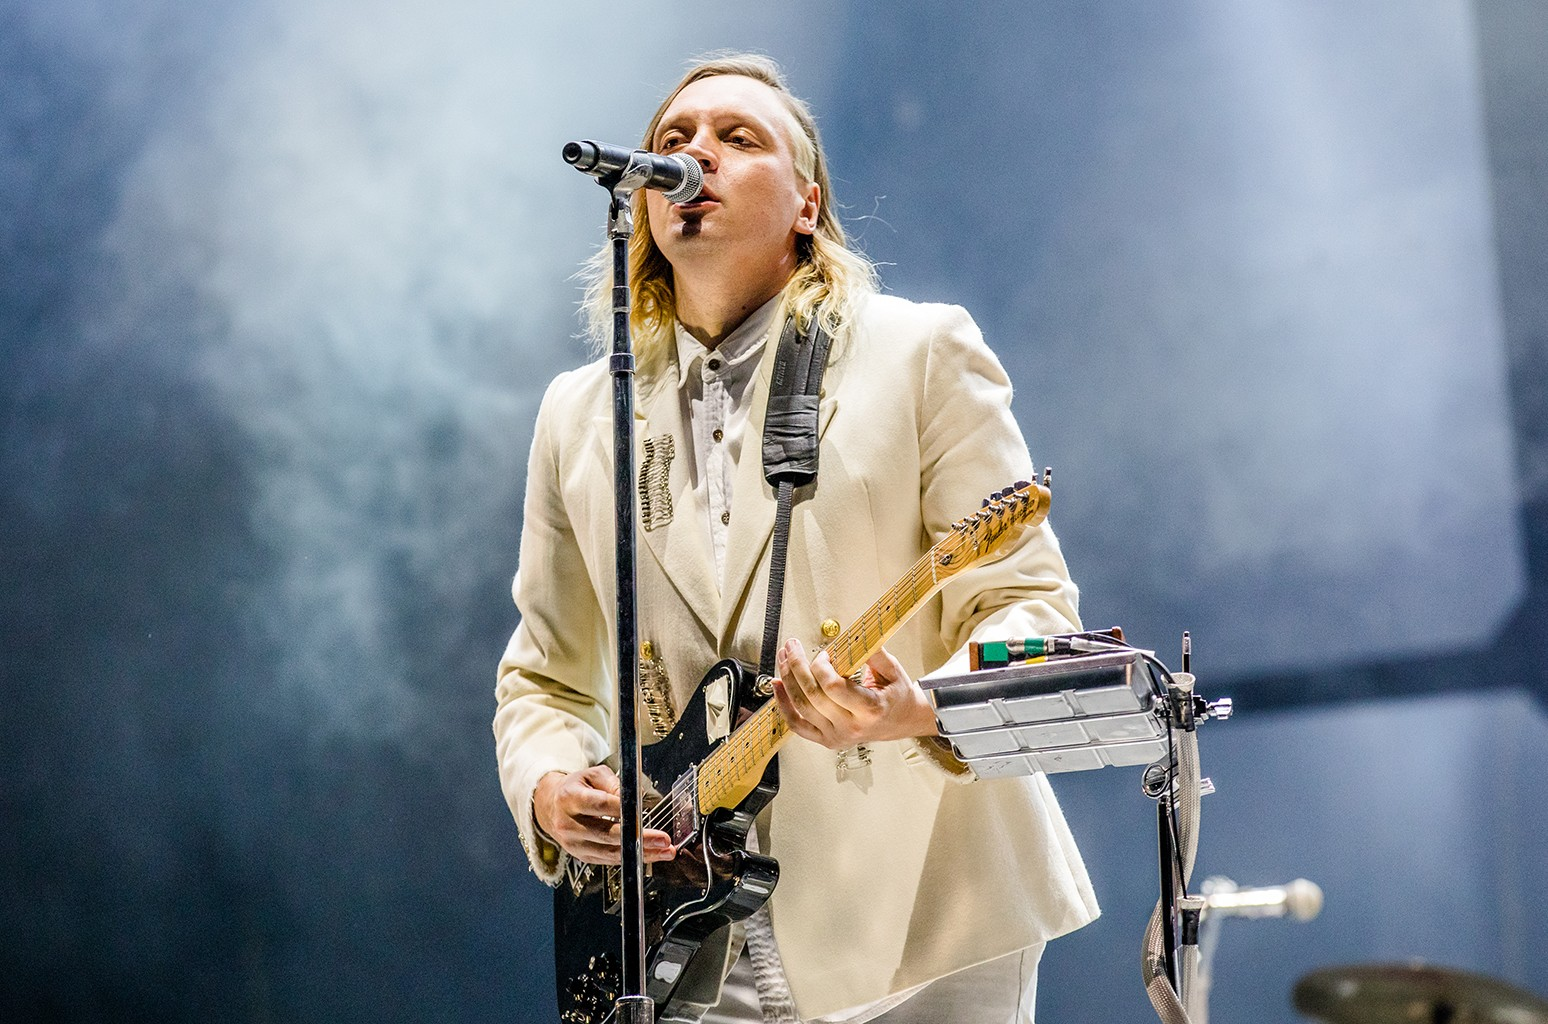 Arcade Fire performs at the Voodoo Music + Arts Experience